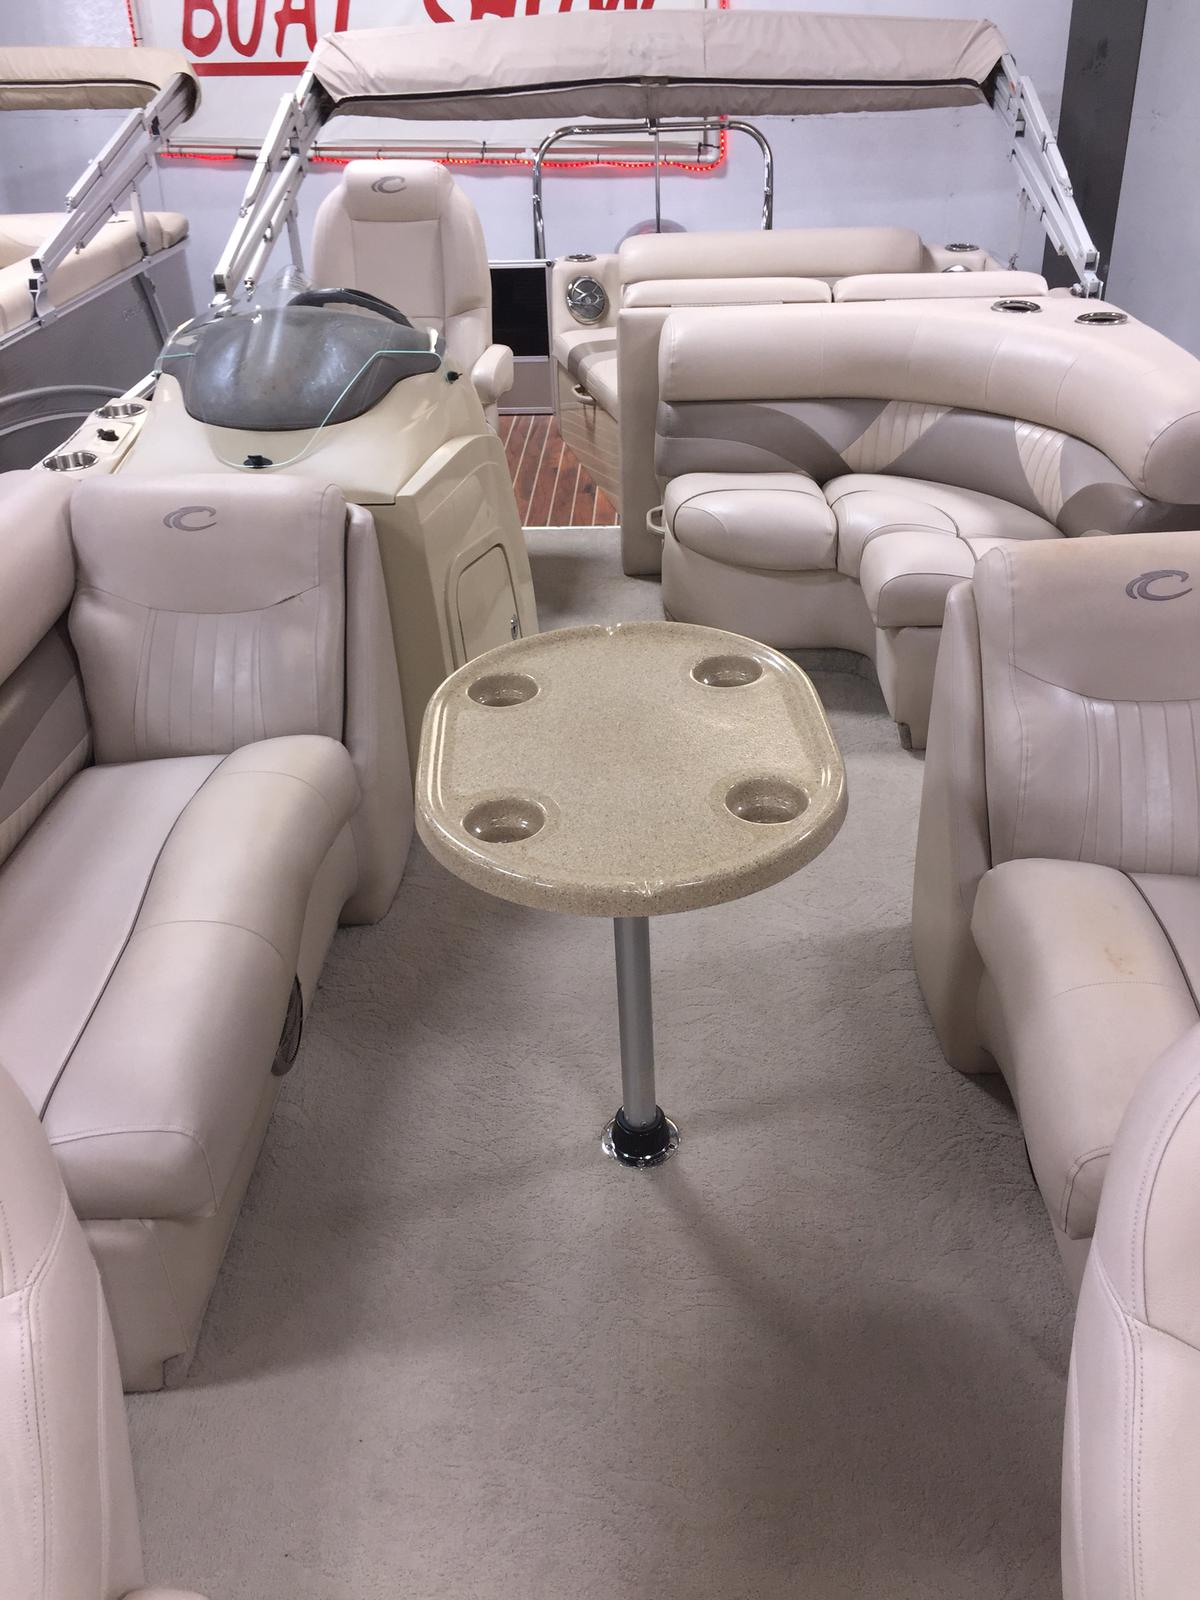 2013 Crest Pontoons Caribbean 230 Slr X For Sale In Charleston Wv Pontoon Boat Wiring Diagram Img 7023